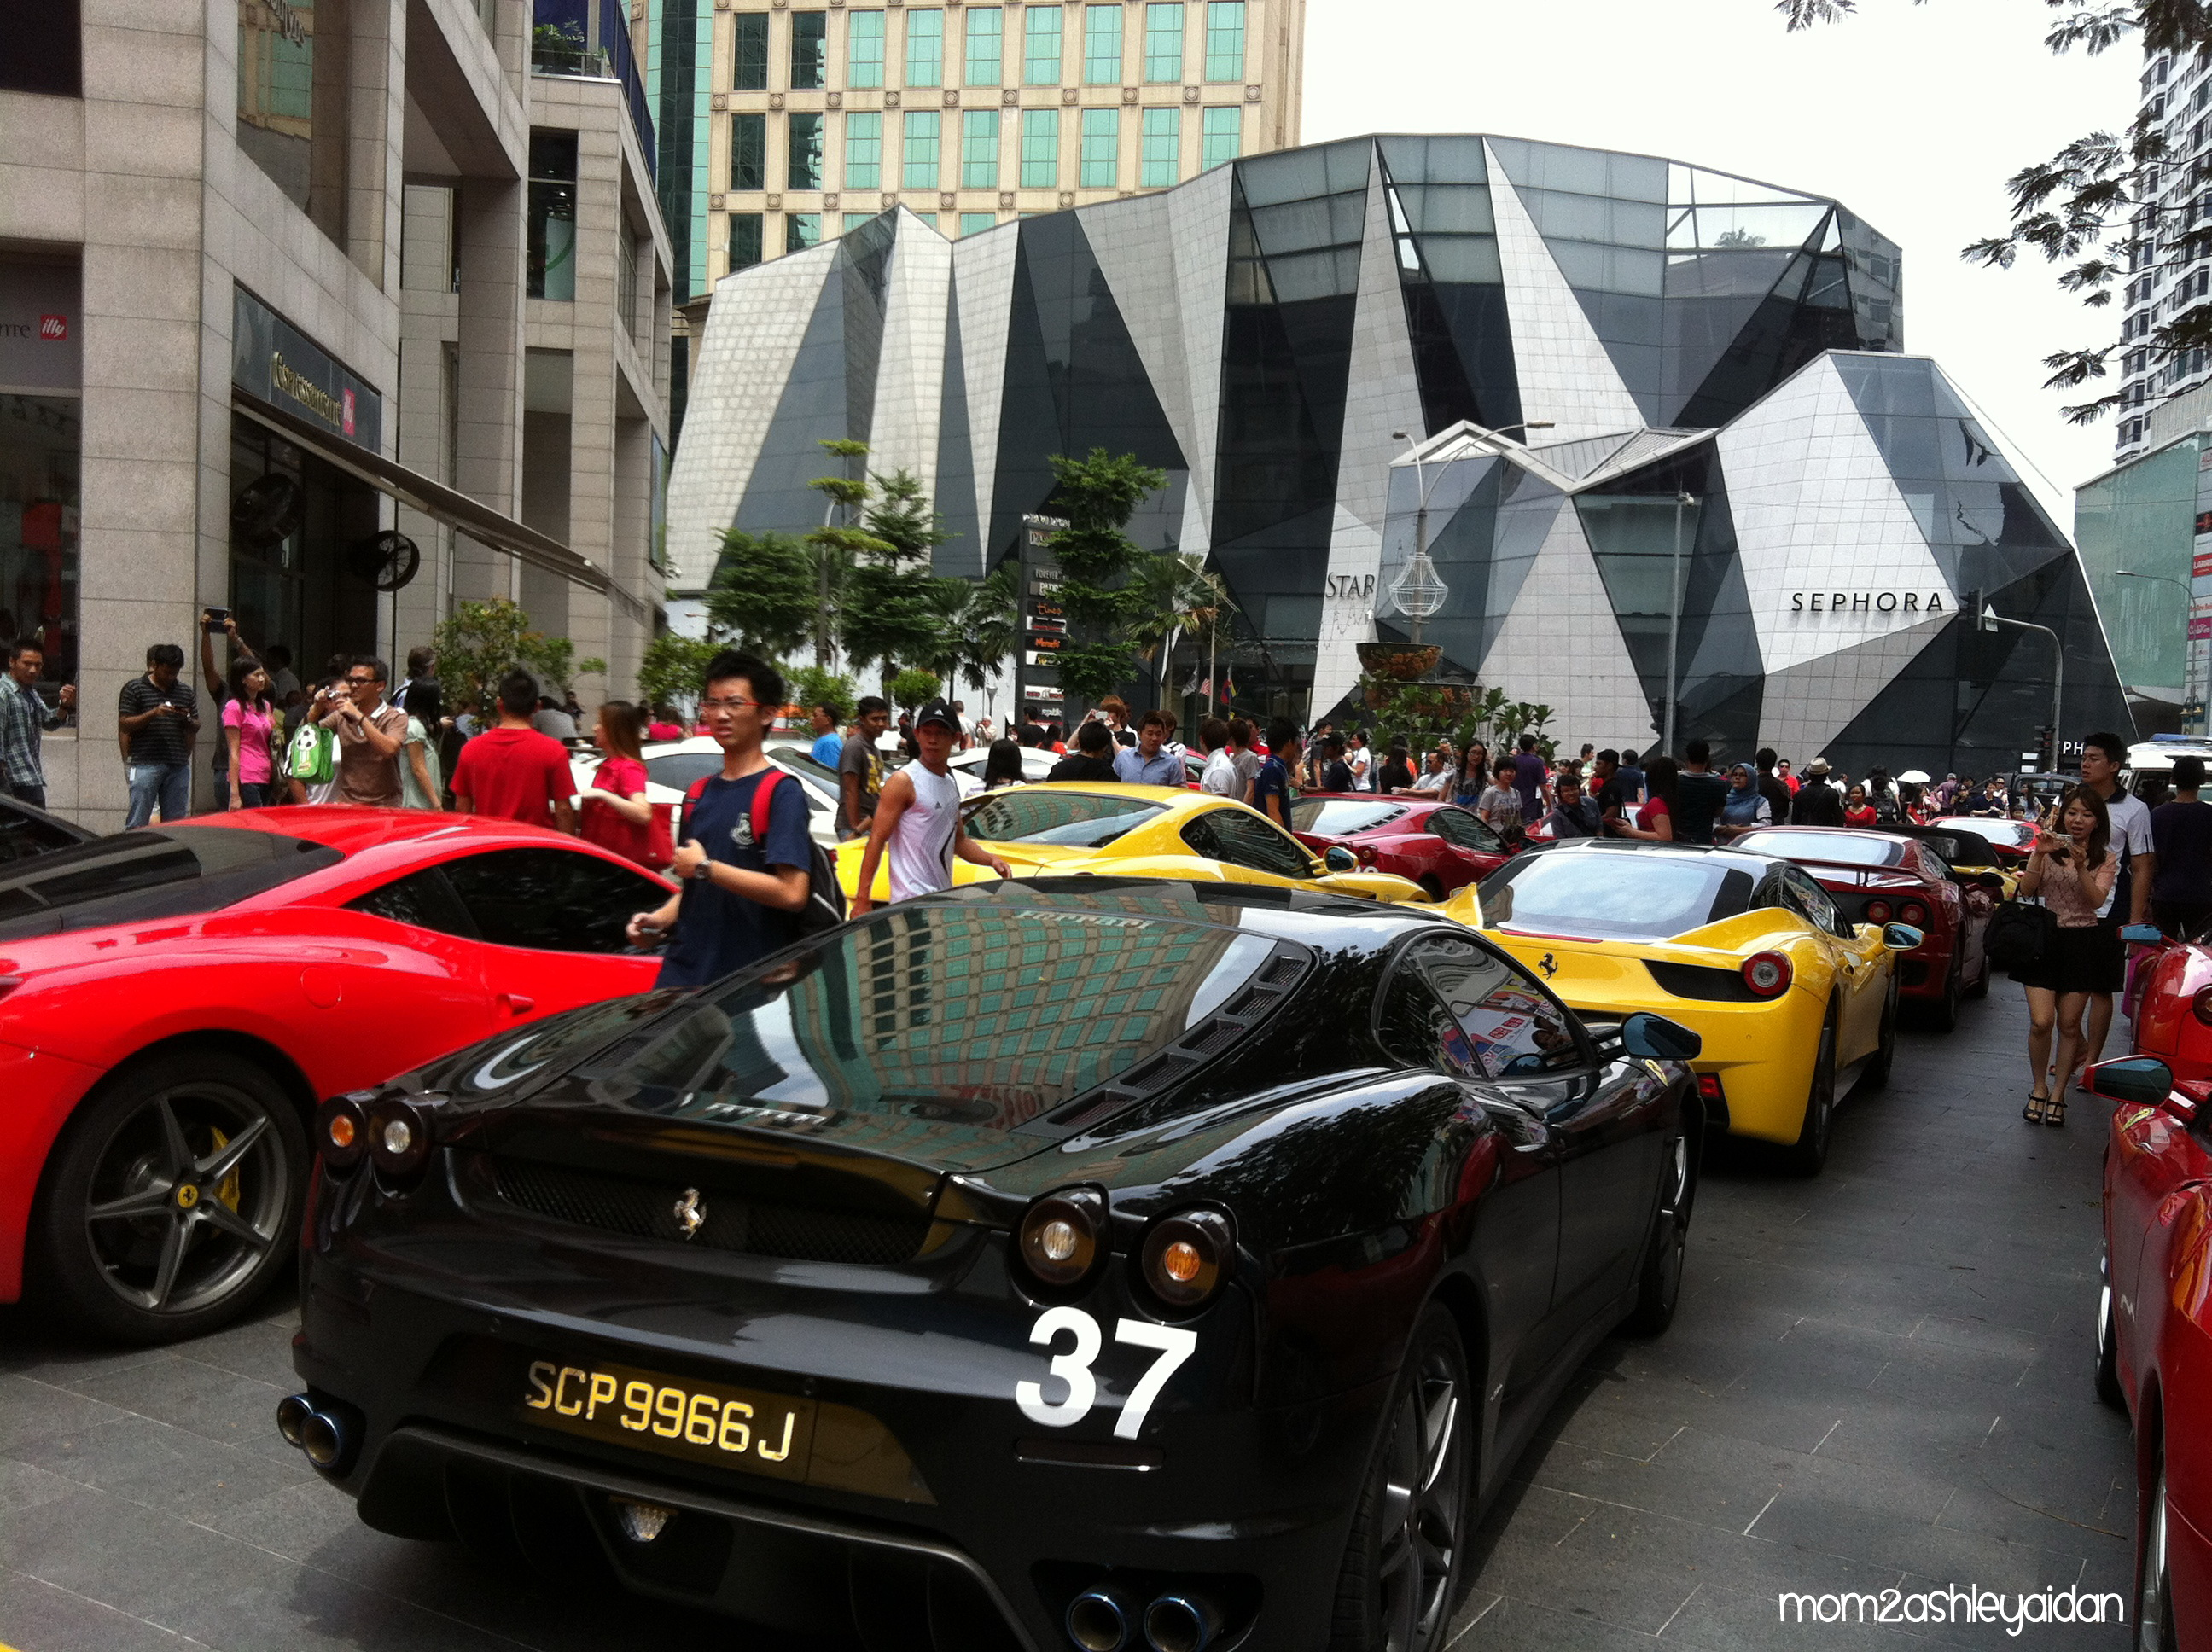 groupon great to allows a whatsundaysarefor lab their the dsc deal agency holidays zoom had ferraris drive customers really that on ferrari supercar and over traveling motorsport